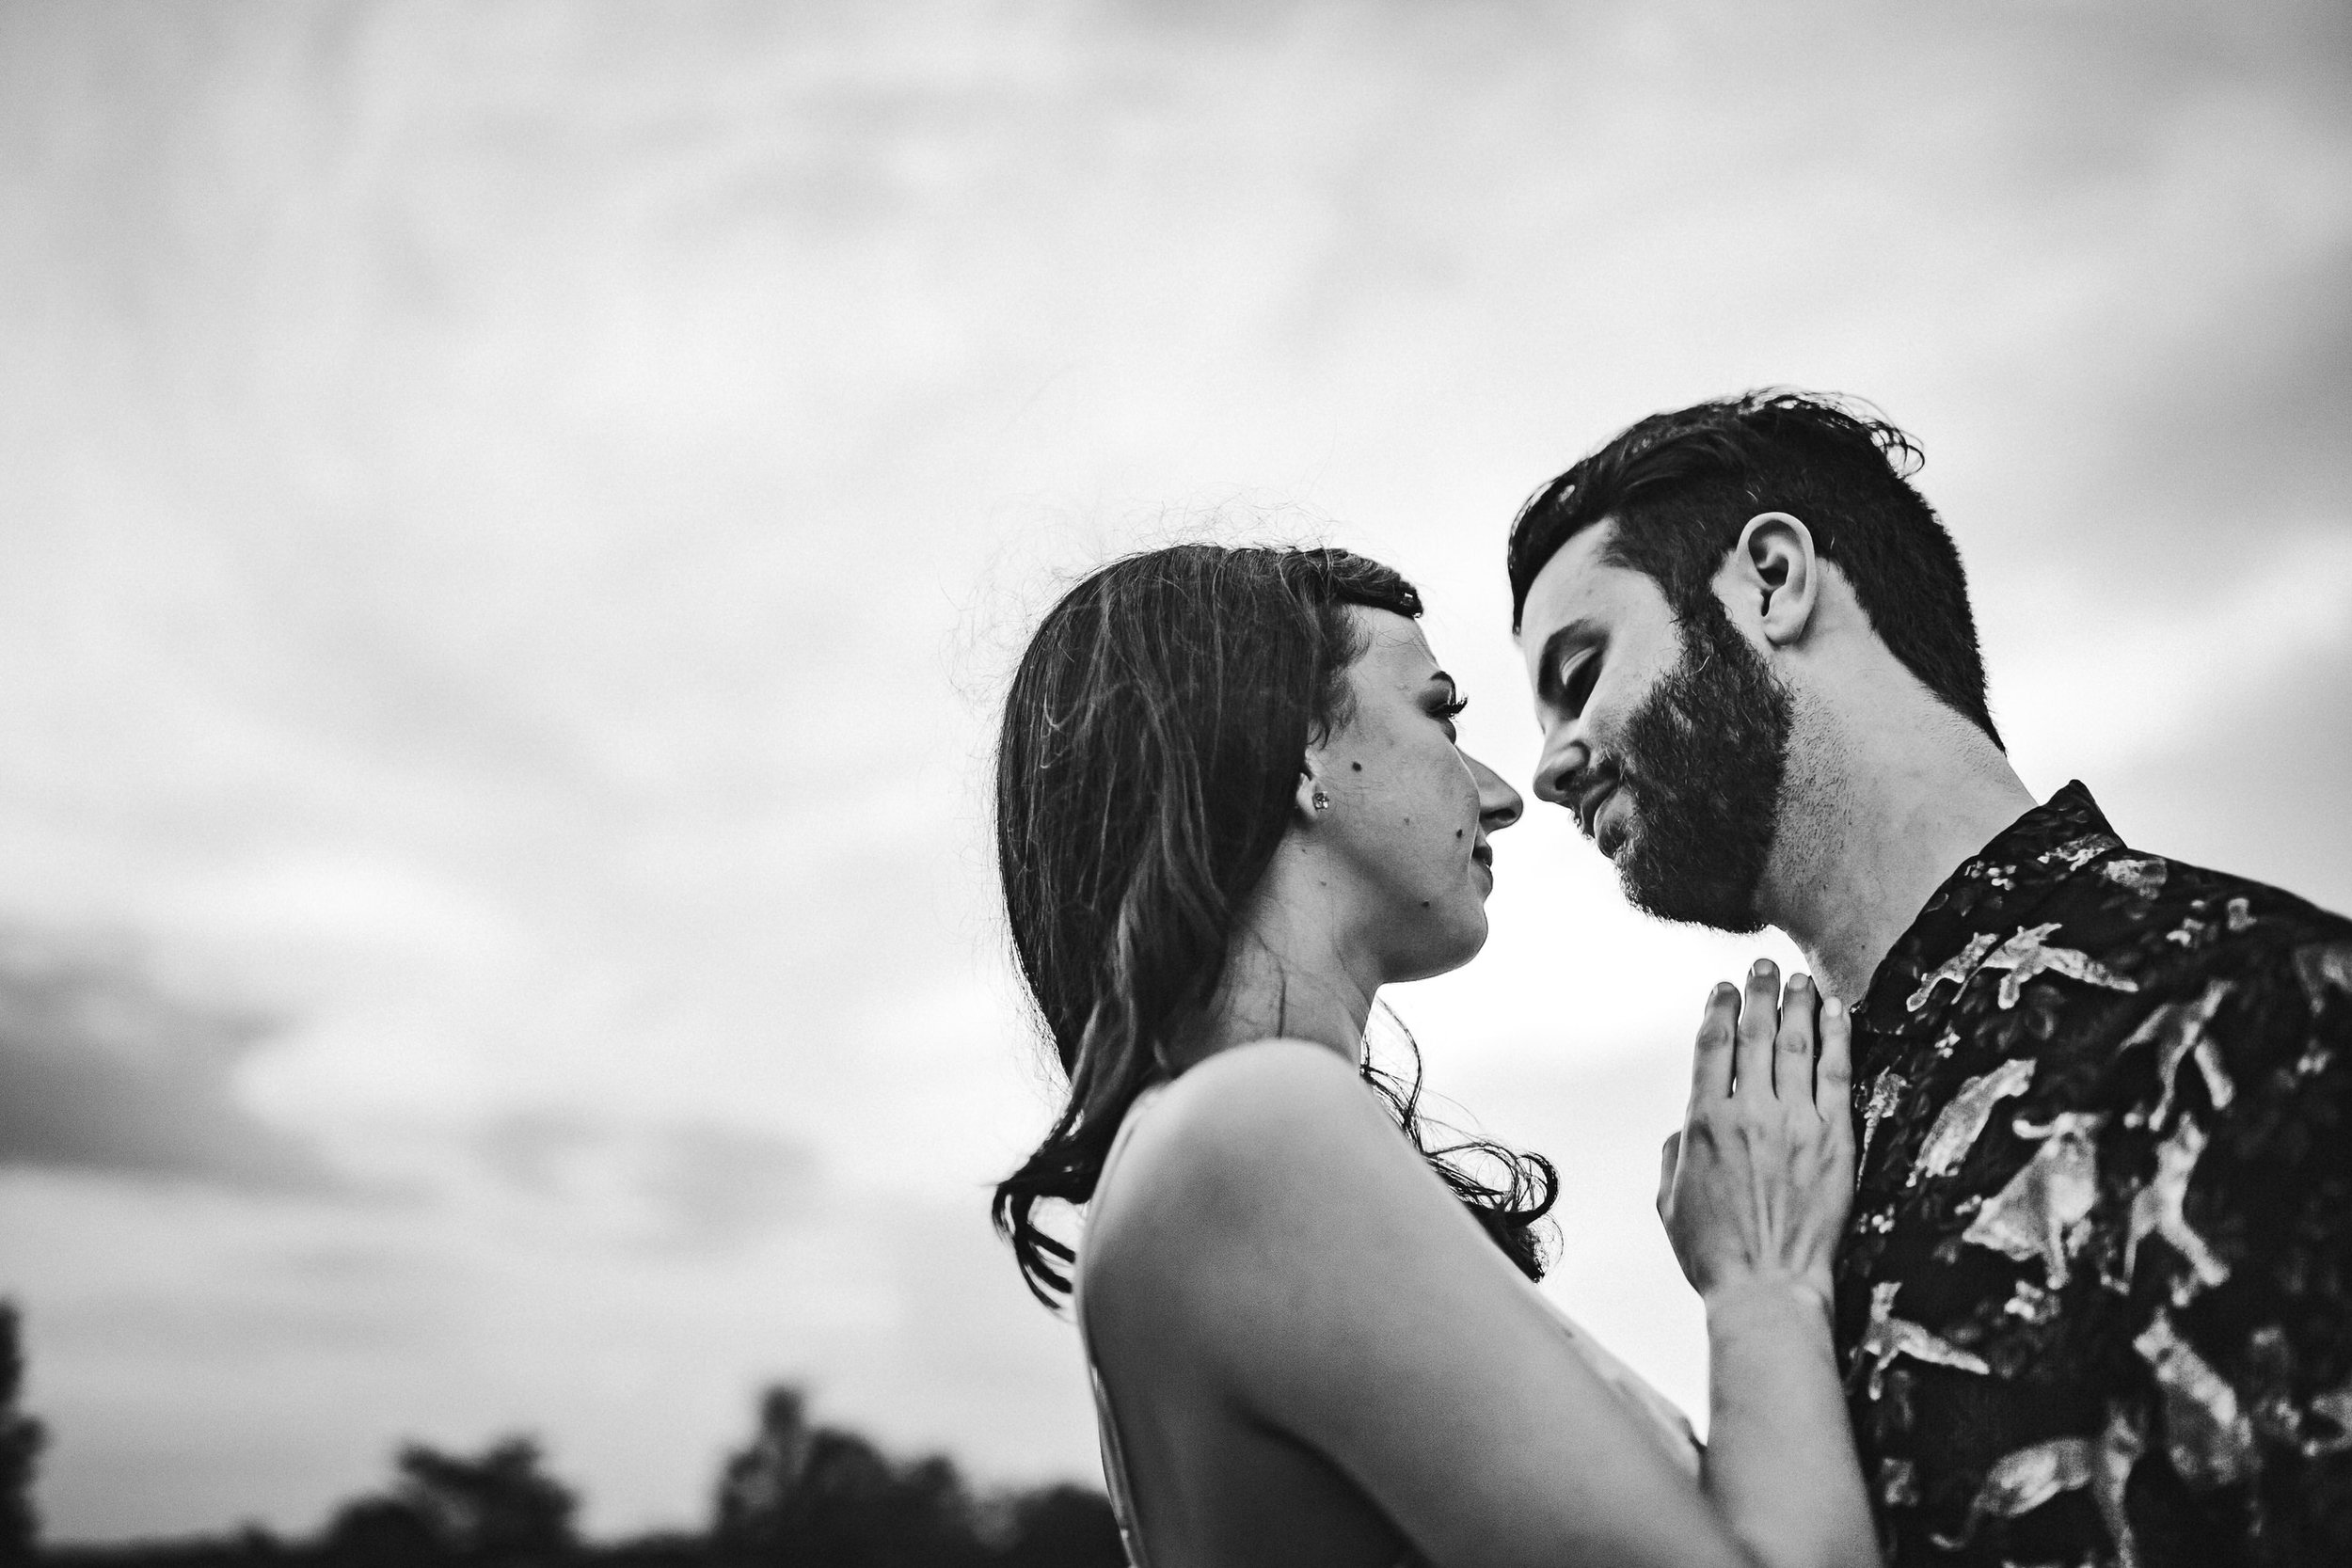 black-and-white-engagement-portrait-love-intimate-engaged-session-tiny-house-photo-florida-documentary-wedding-photographer.jpg